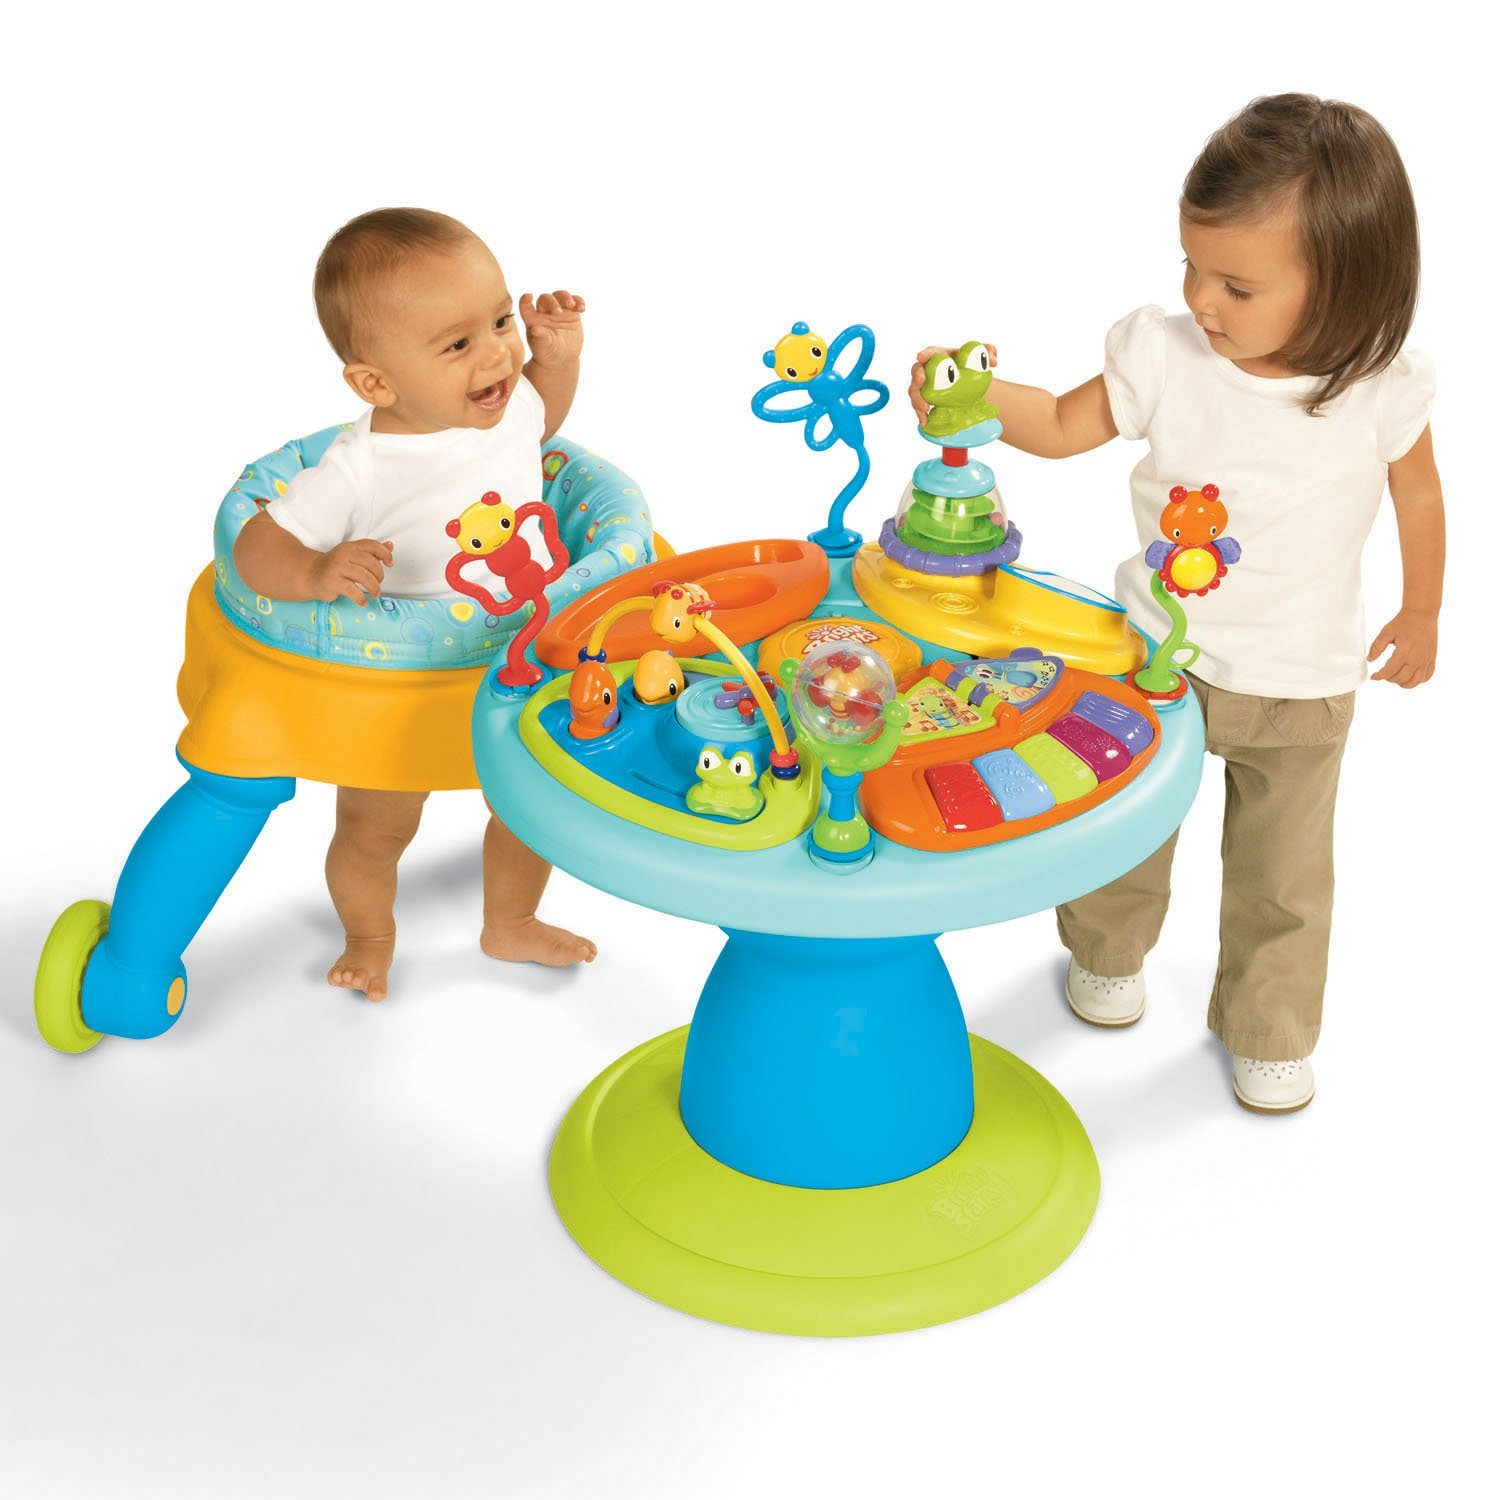 toys for rent bright starts around we go activity station why buy when you can rent. Black Bedroom Furniture Sets. Home Design Ideas